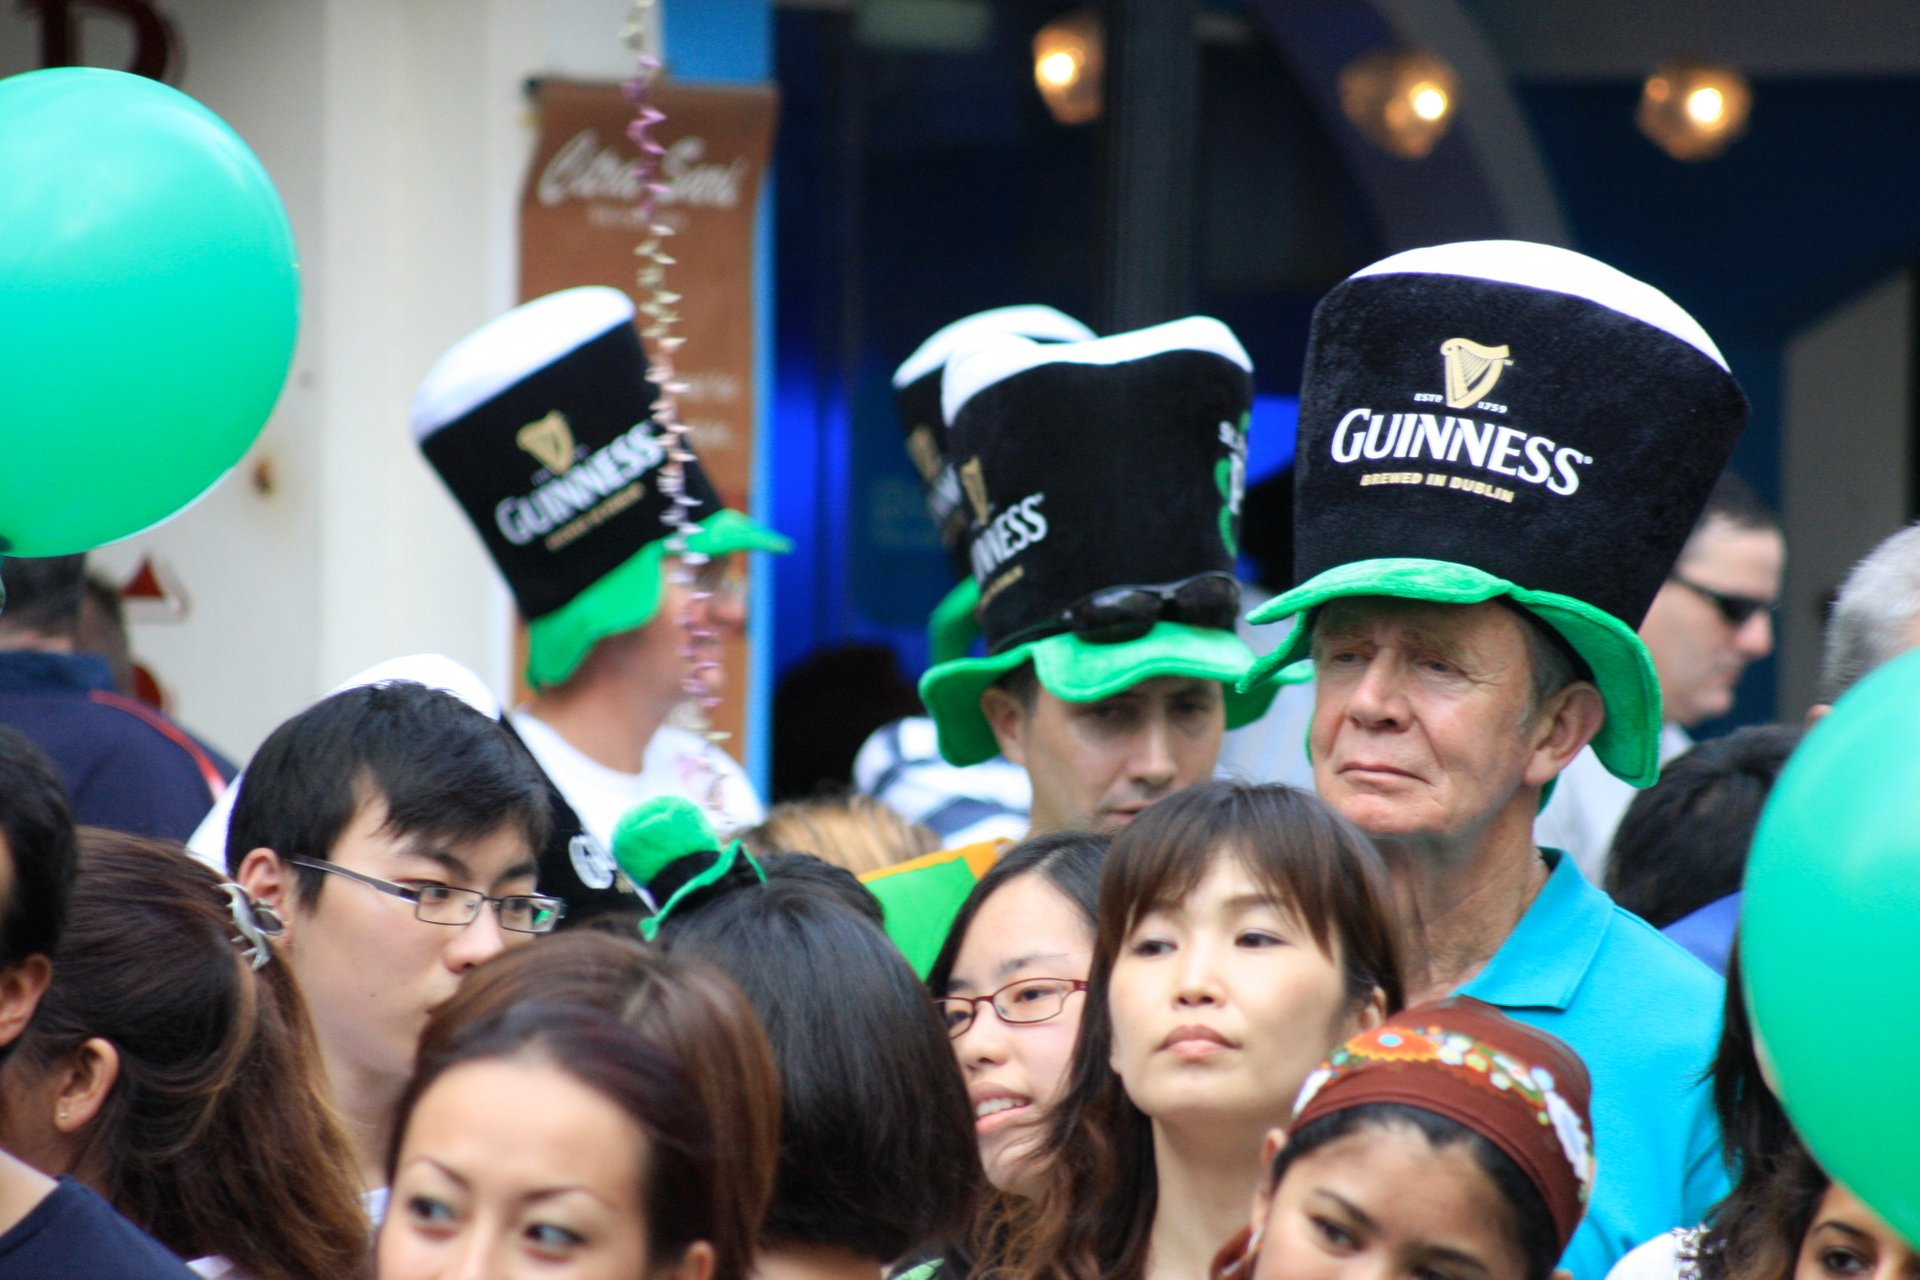 St. Patrick's Day Street Festival Singapore in Singapore 2020 - Best Time